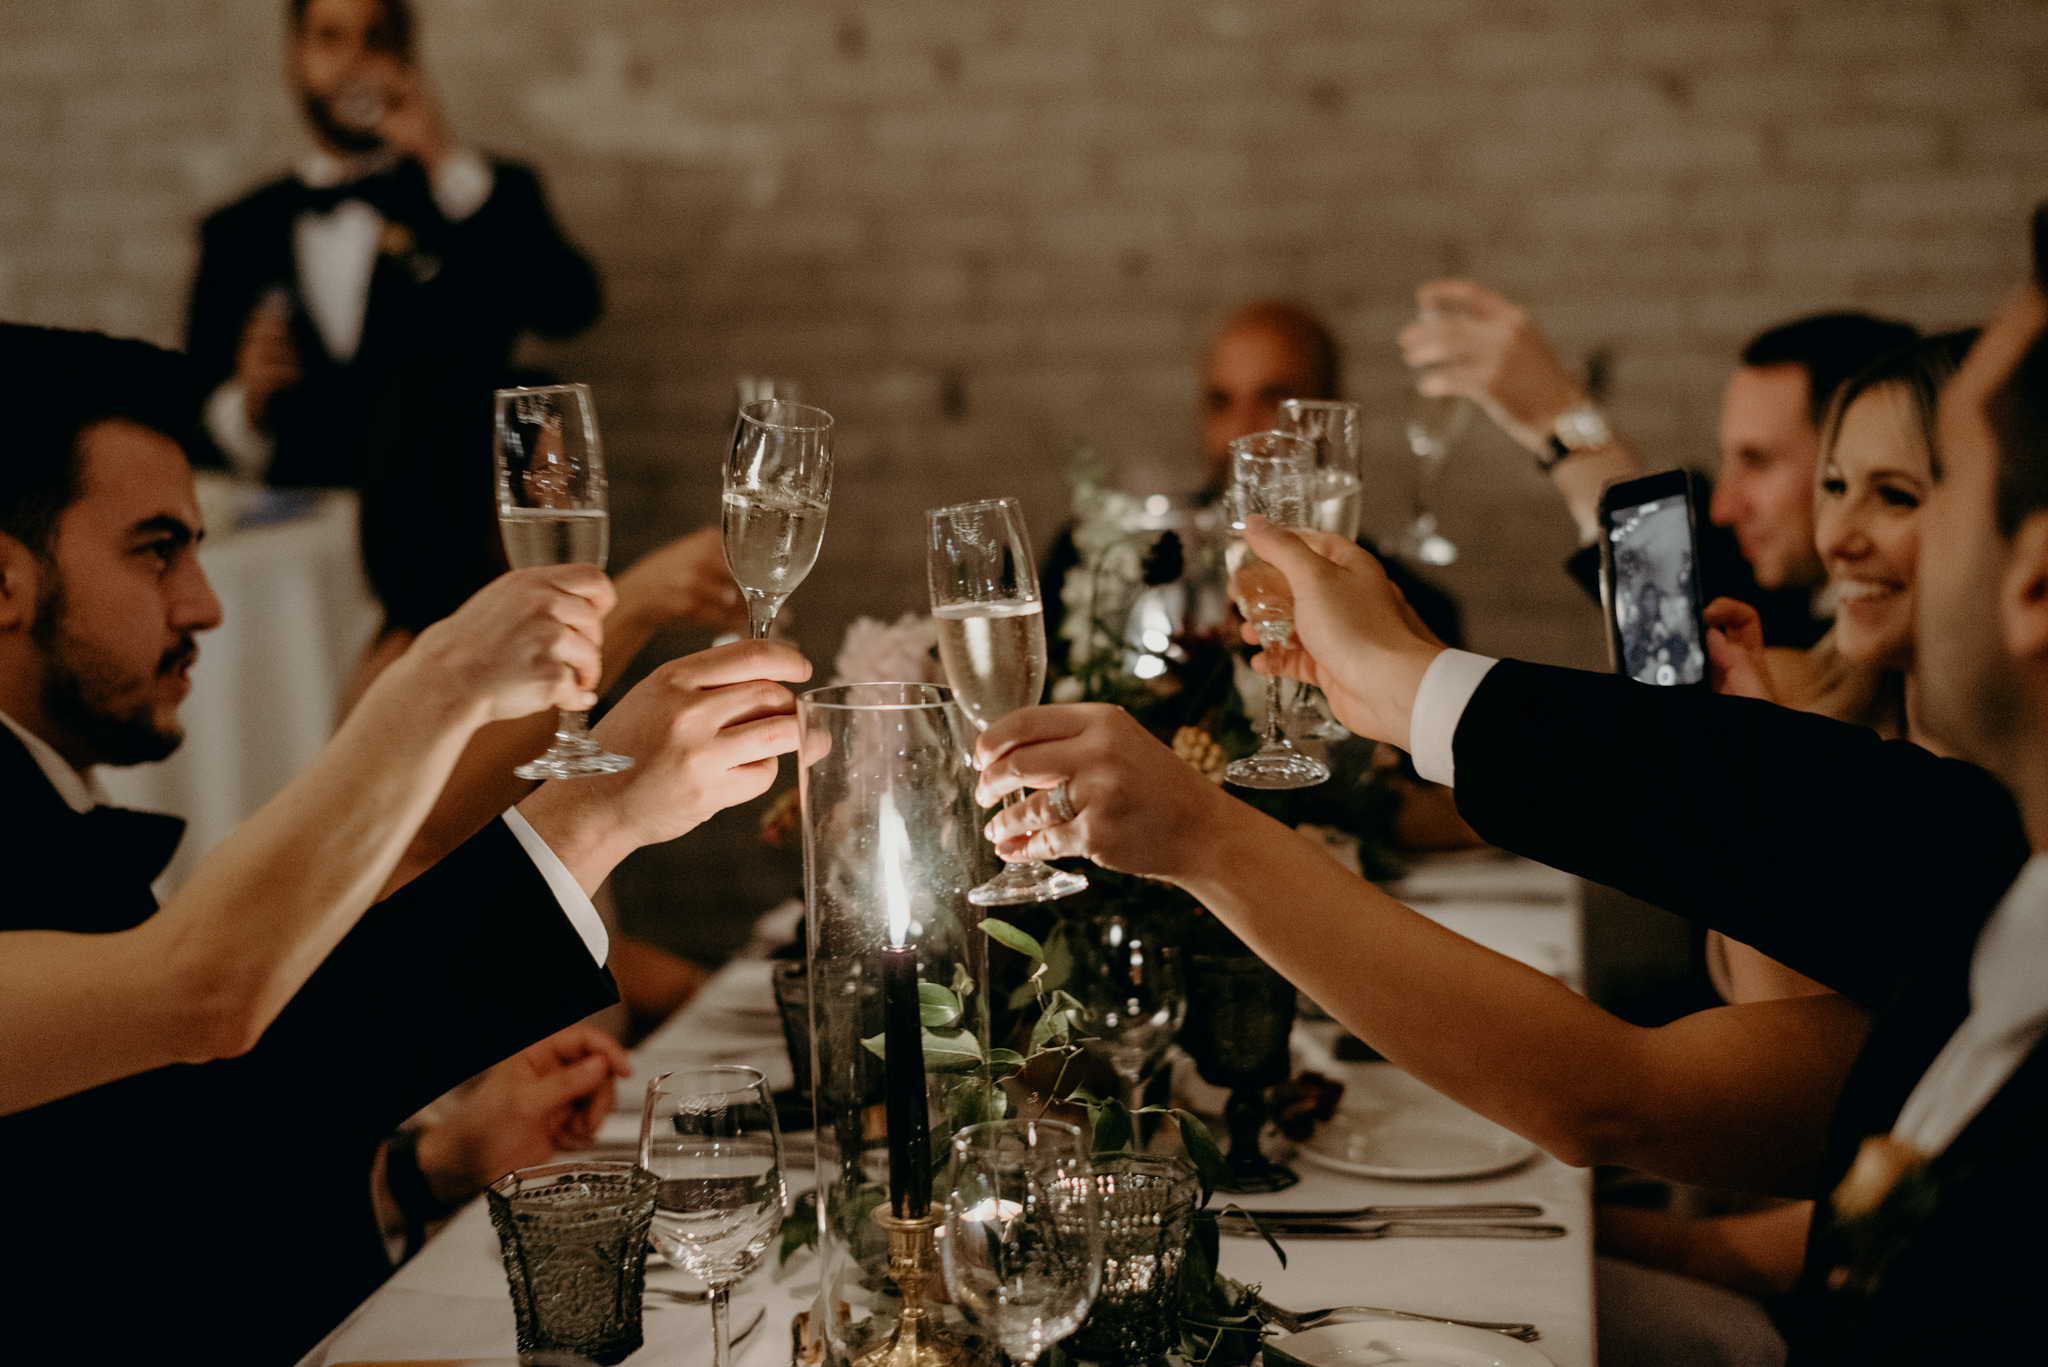 Guests clinking glasses during at Storys Building wedding reception